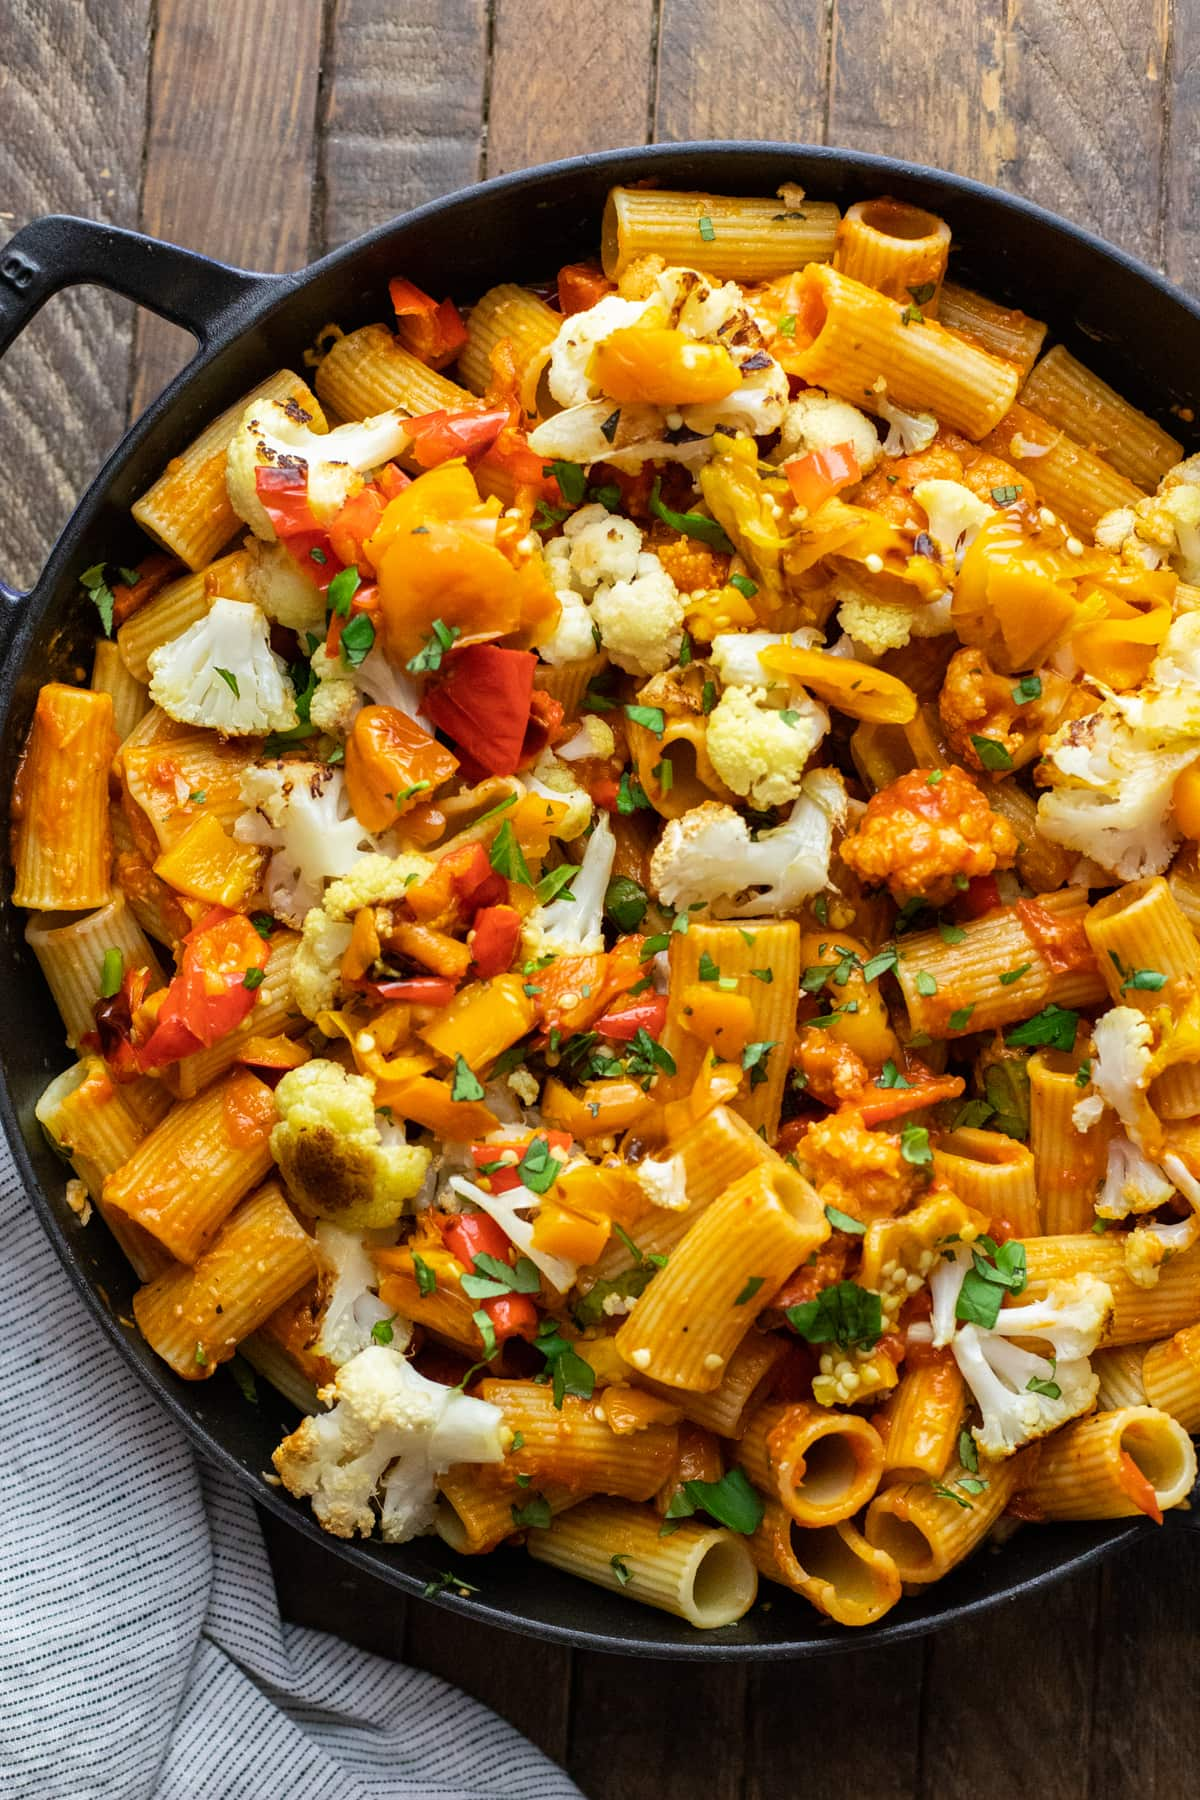 Cast iron pot with pasta noodles and roasted vegetables.